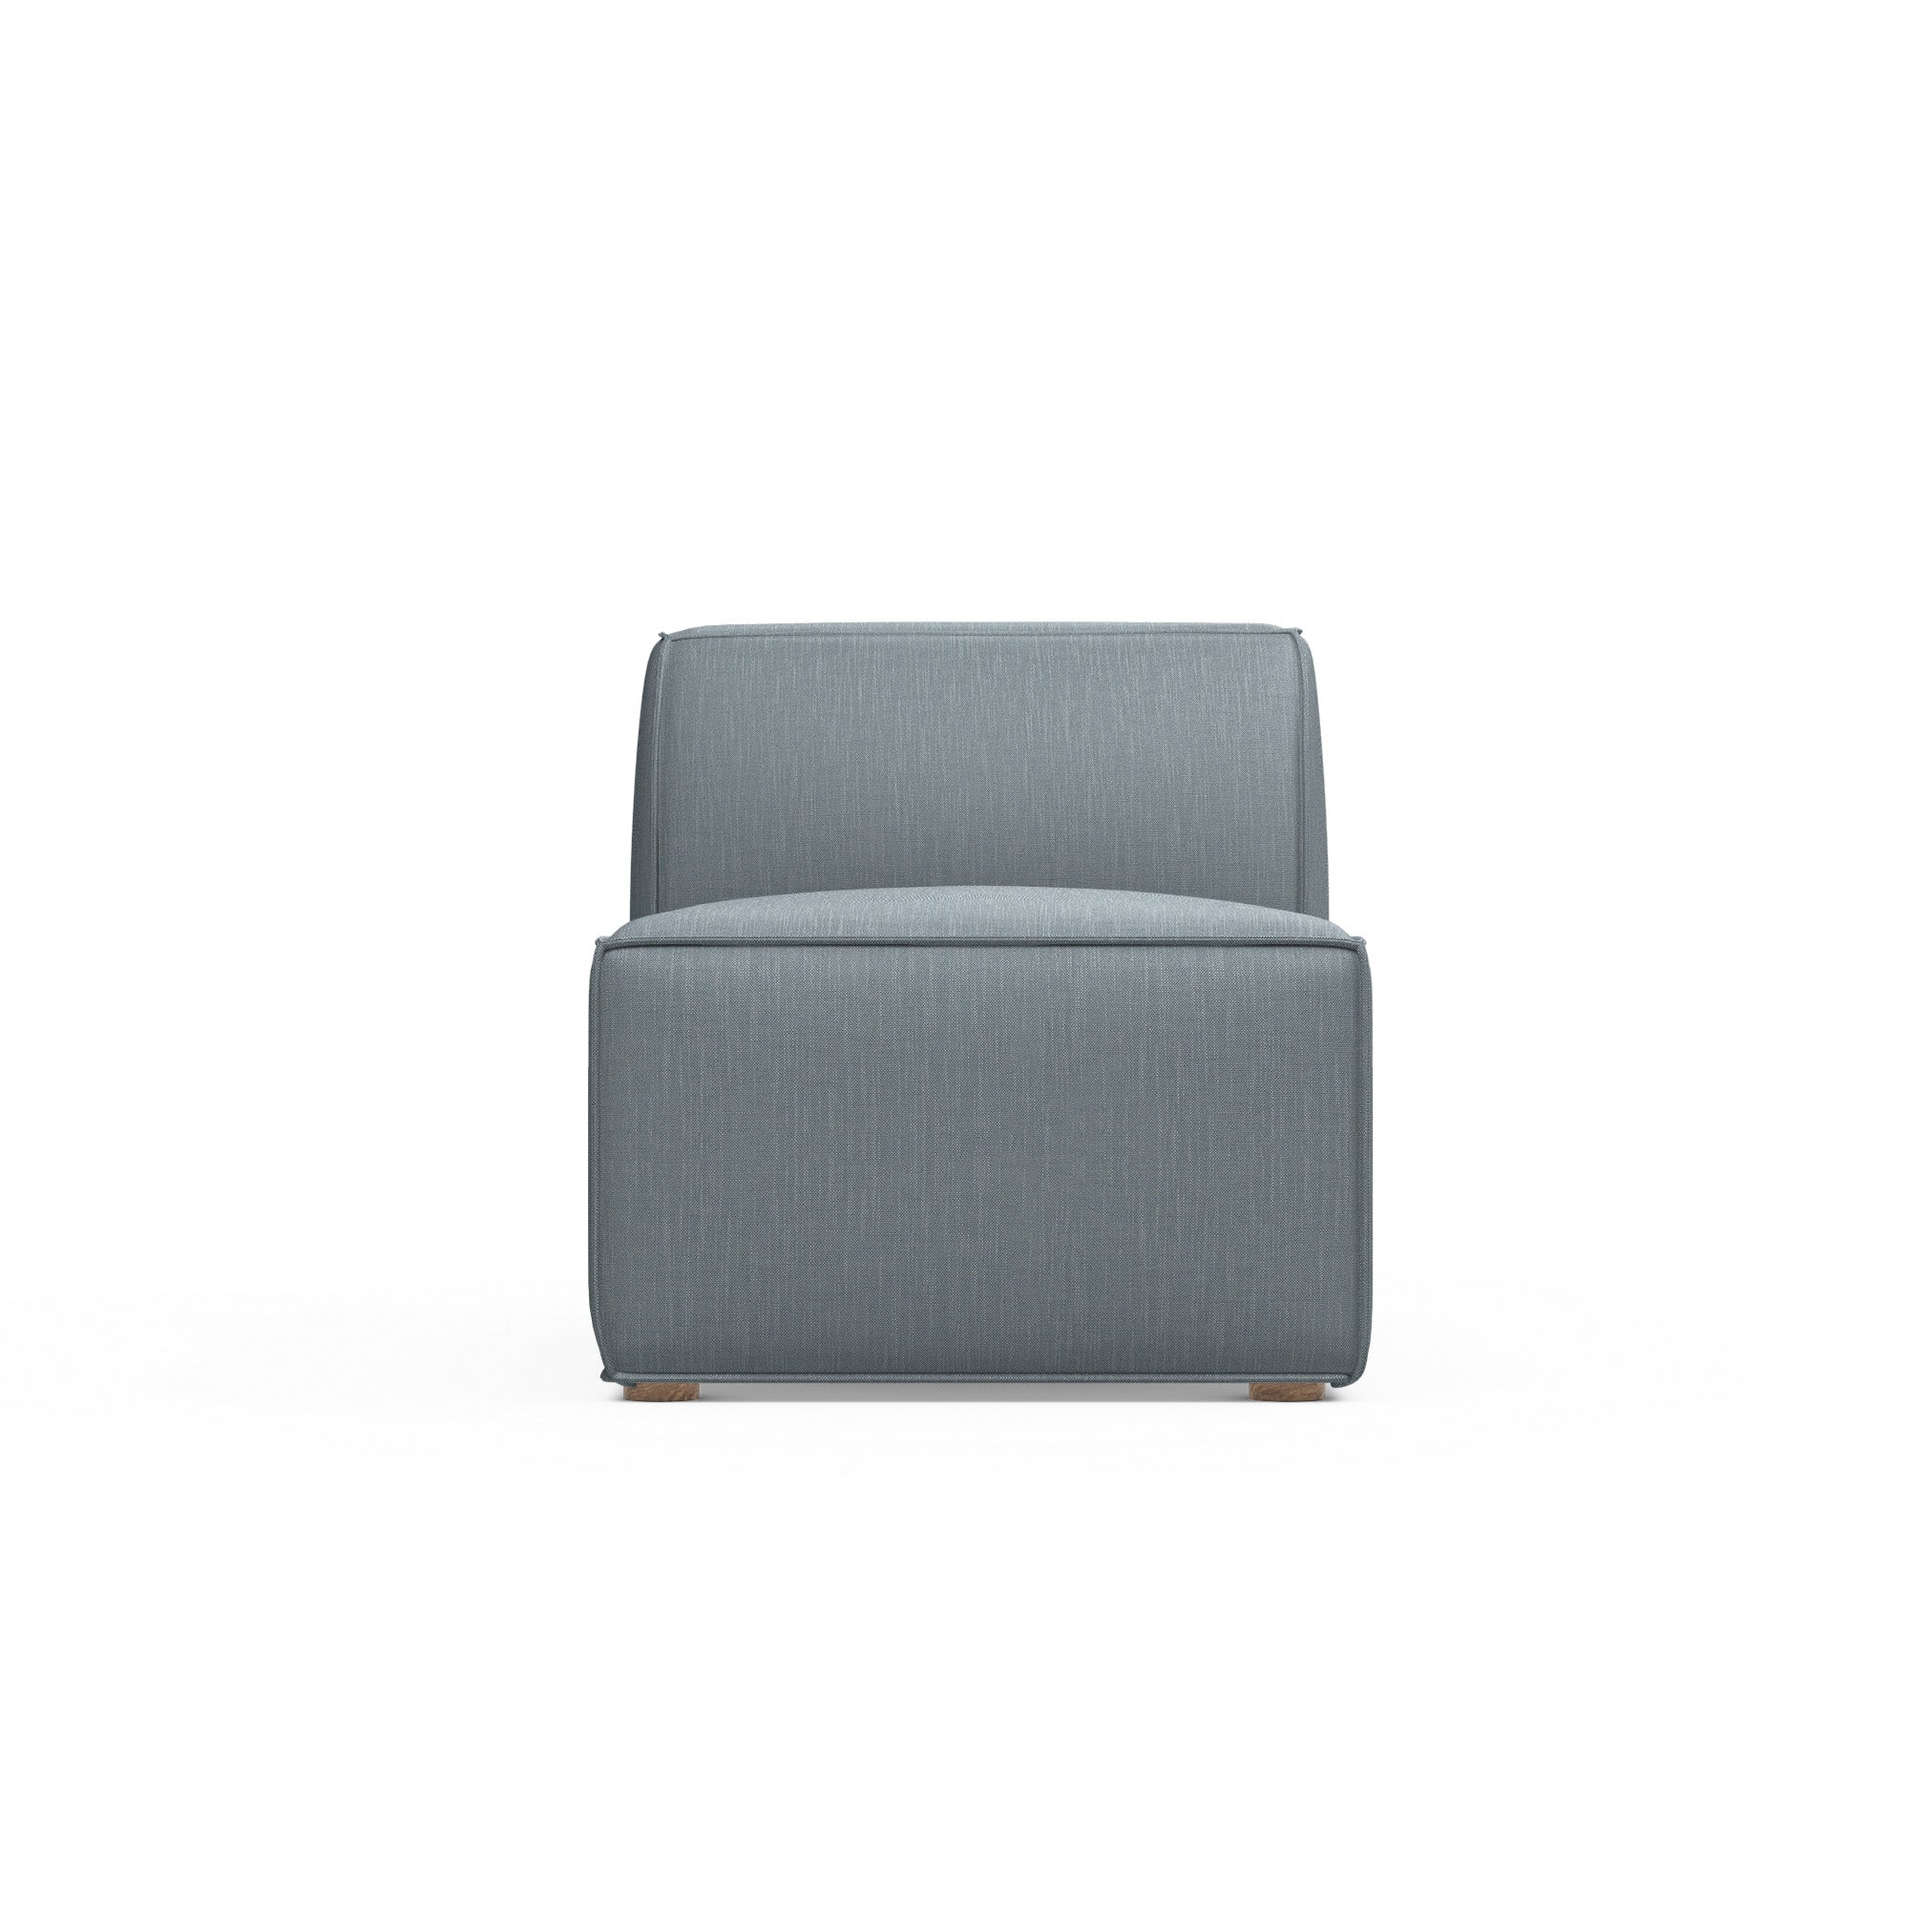 Varick Armless Chair - Haze Box Weave Linen